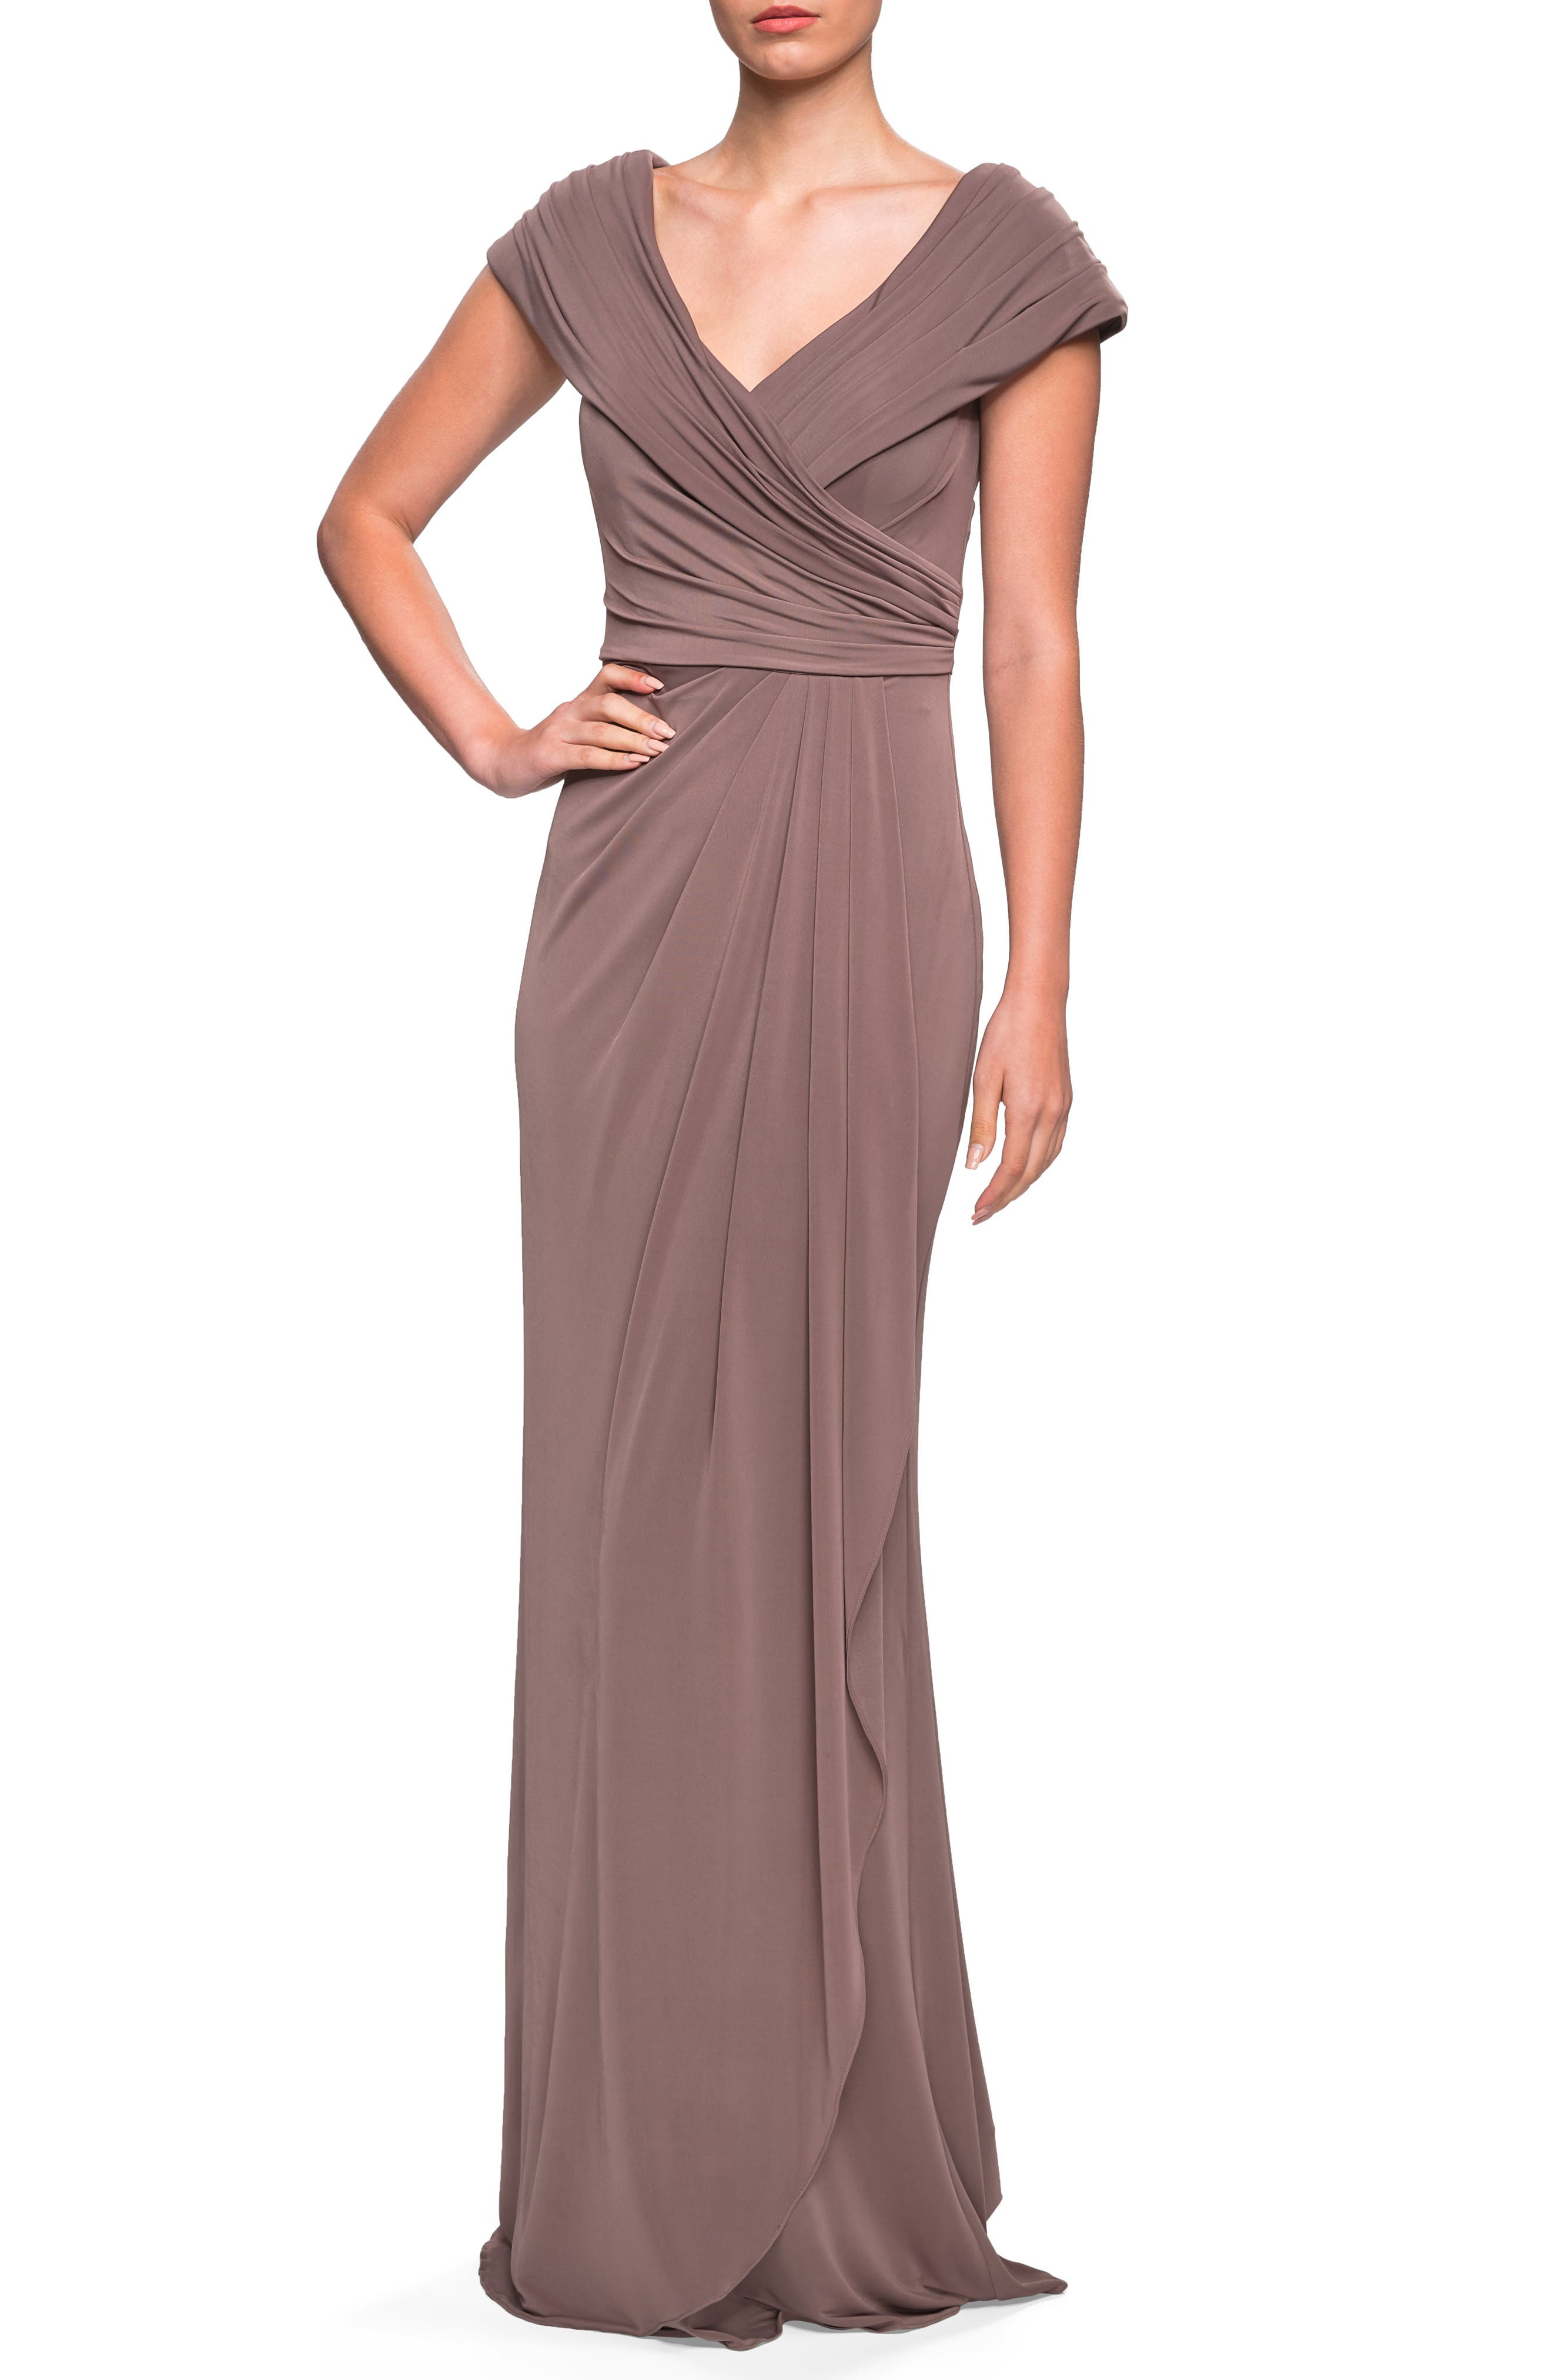 LA FEMME, Ruched Jersey Gown, Main thumbnail 1, color, COCOA